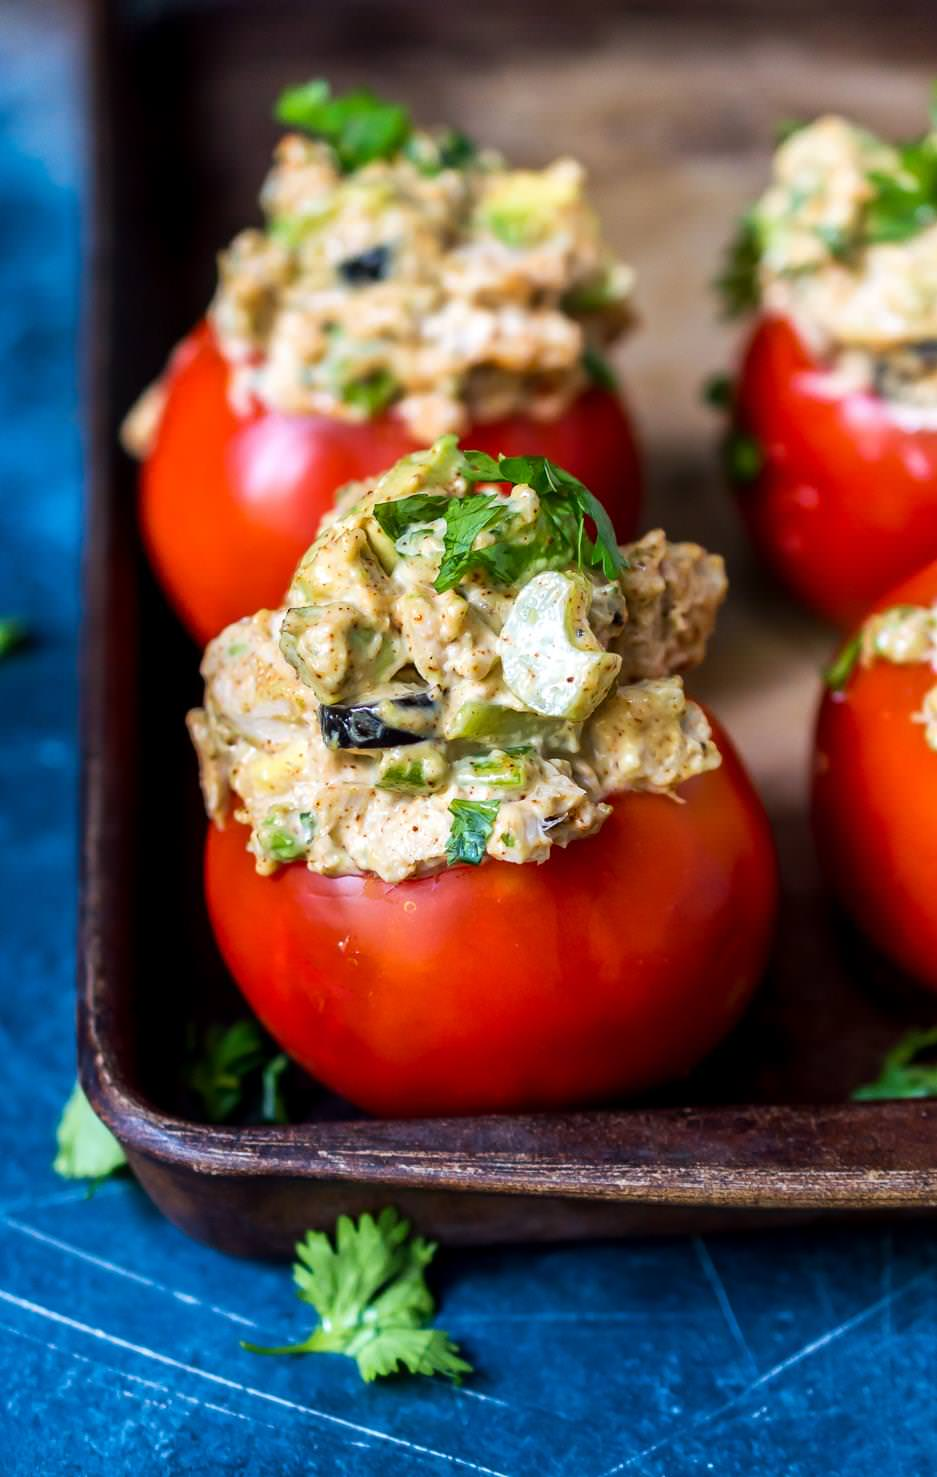 taco tuna stuffed tomatoes topped with fresh cilantro